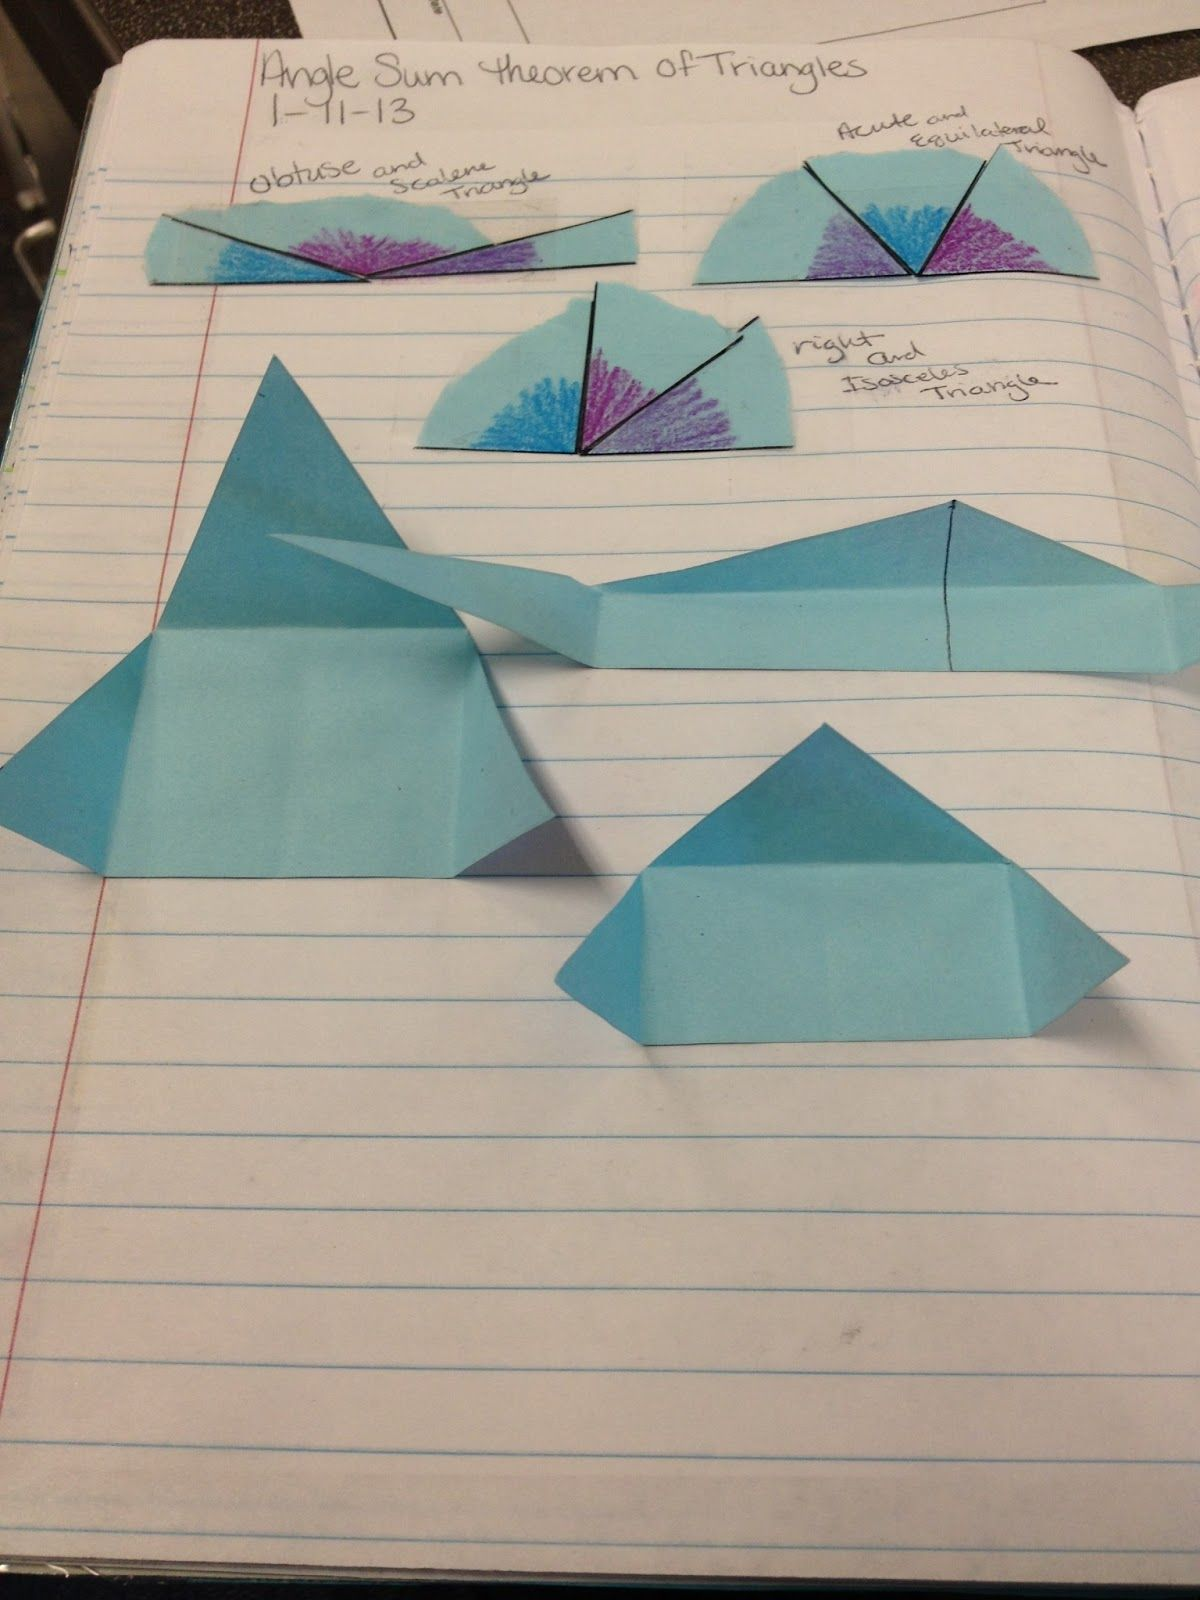 Angle Sum Theorem It S Not A Rigorous Proof But It S A